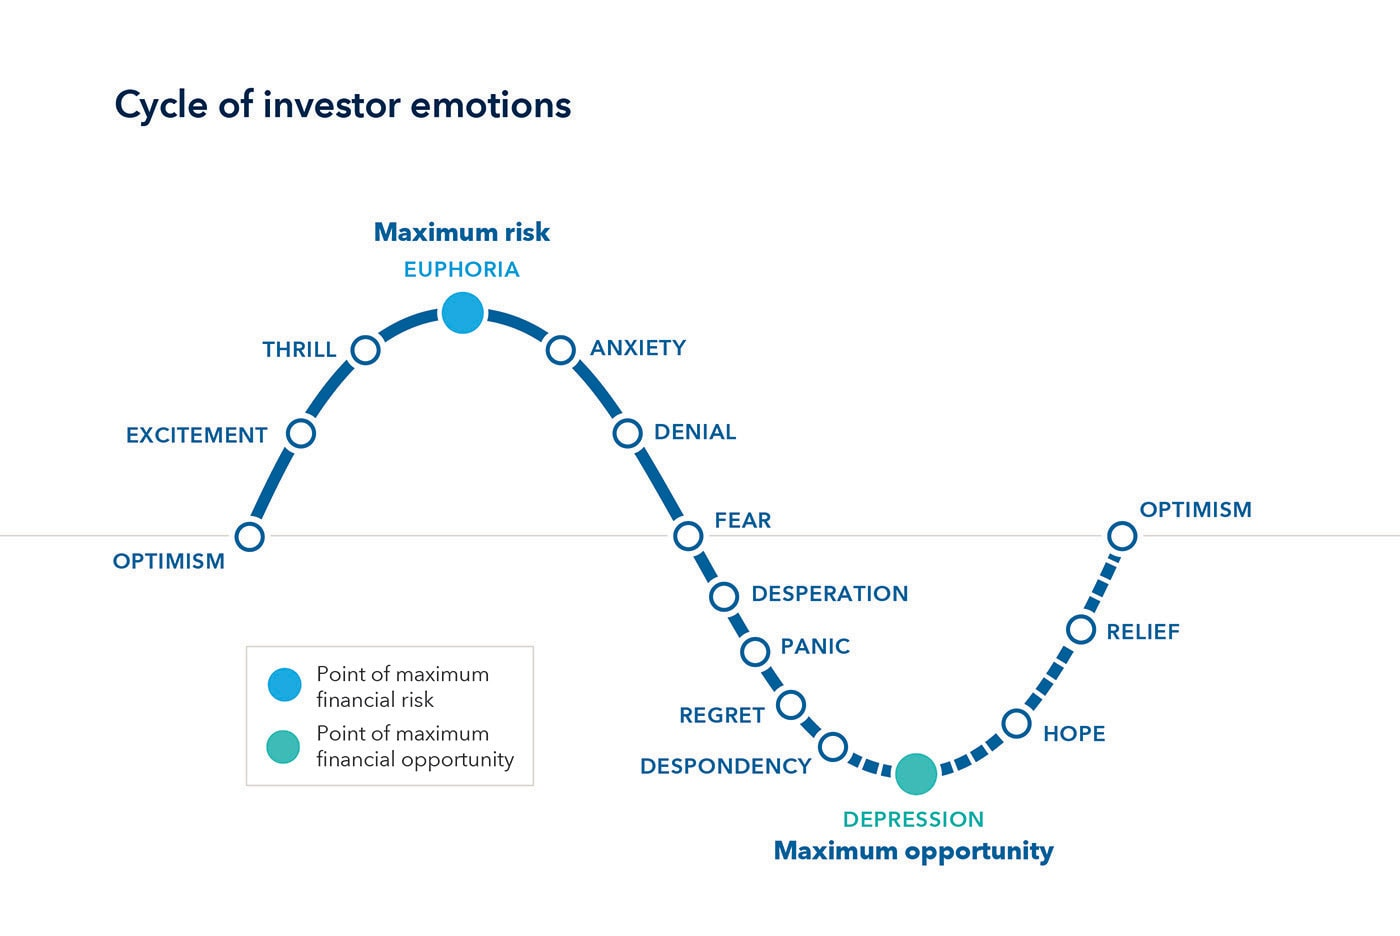 A curved graph identifying the cycle of investor emotions. As the market moves higher, so do investor emotions. Beginning at optimism, investor emotions move higher to excitement and eventually euphoria (the point of maximum financial risk). As the market turns down, so do investor emotions, going from euphoria to anxiety, desperation and, eventually, depression (the point of maximum financial opportunity). From depression, investor emotions gradually increase to hope, relief, and finally returning to optimism.